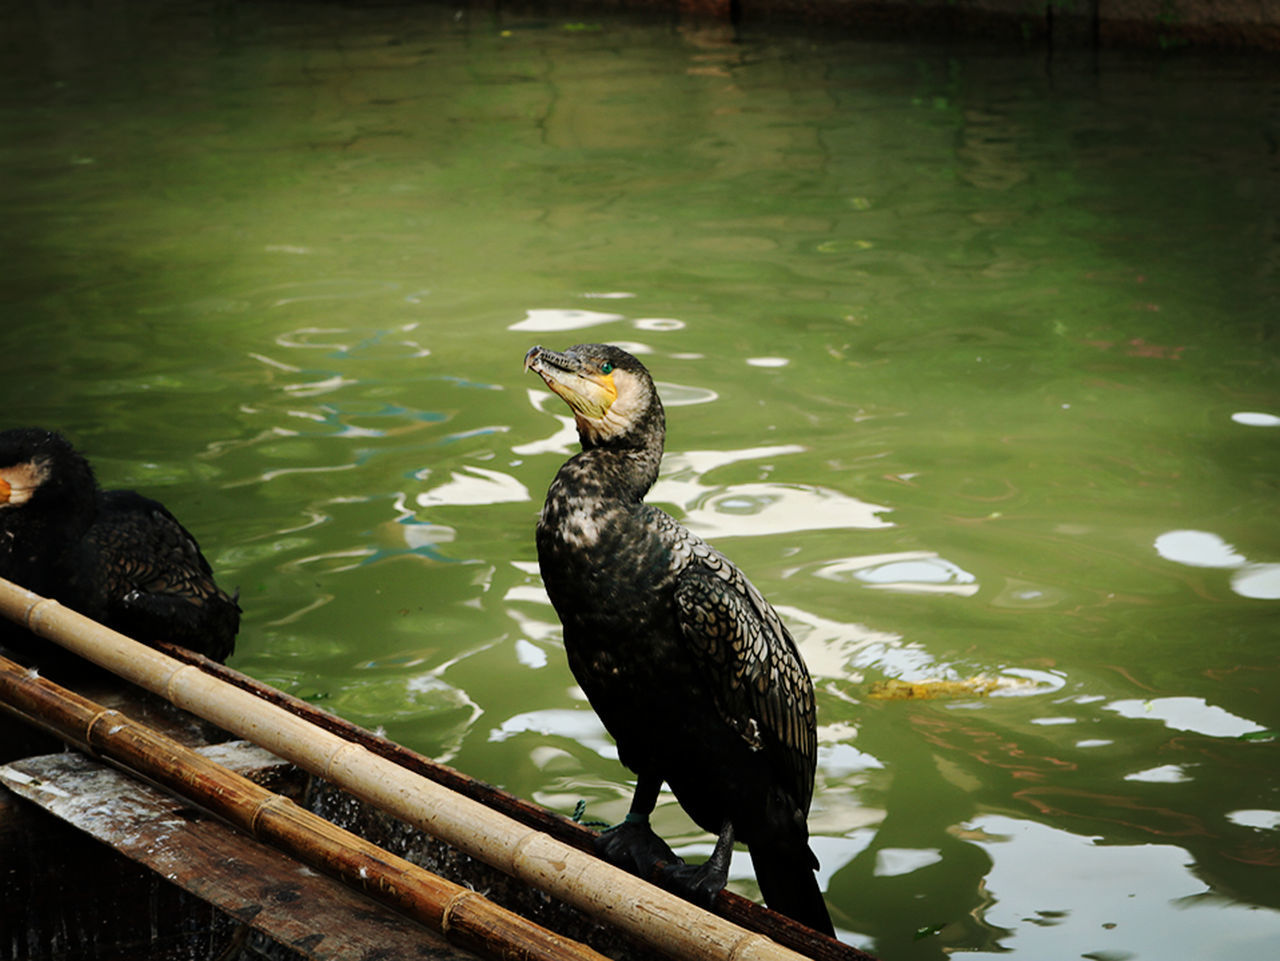 animal themes, bird, water, animals in the wild, one animal, animal wildlife, no people, lake, nature, day, outdoors, beauty in nature, perching